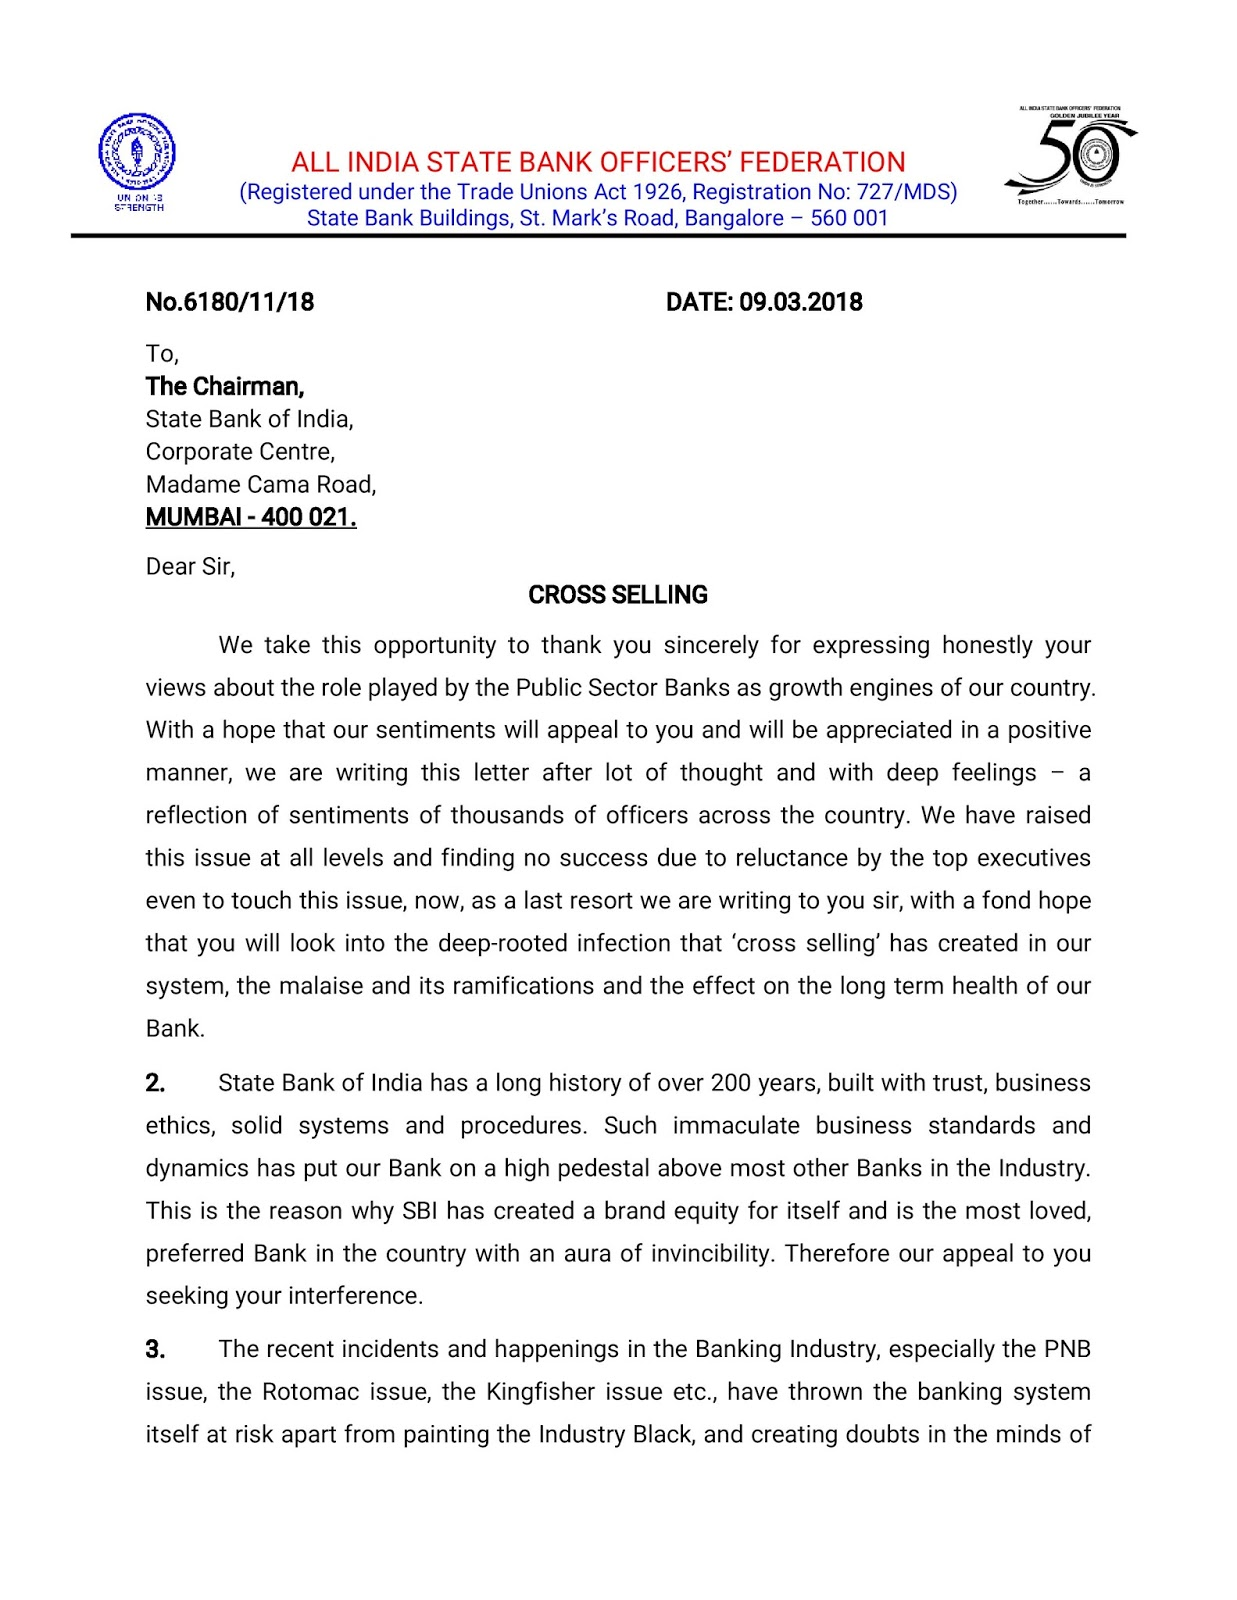 All India State Bank Federation Released Circular regarding cross selling